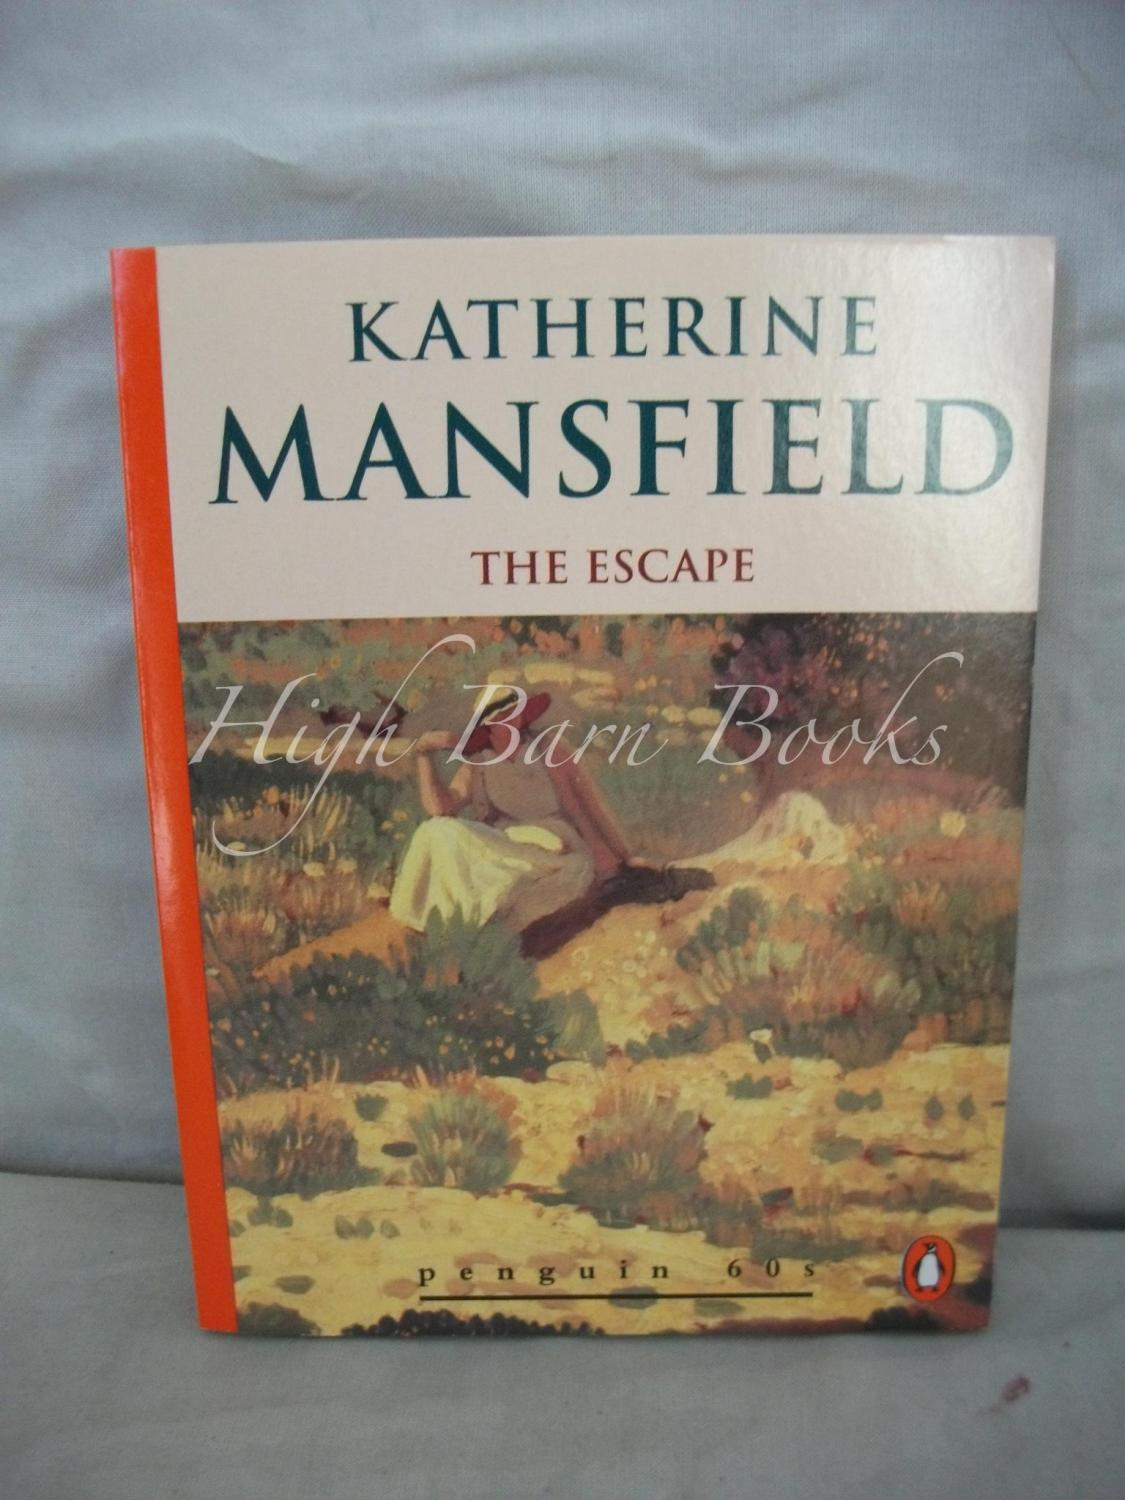 9780146000614 - Mansfield, Katherine: The Escape and Other Stories (Penguin 60s) - Livre